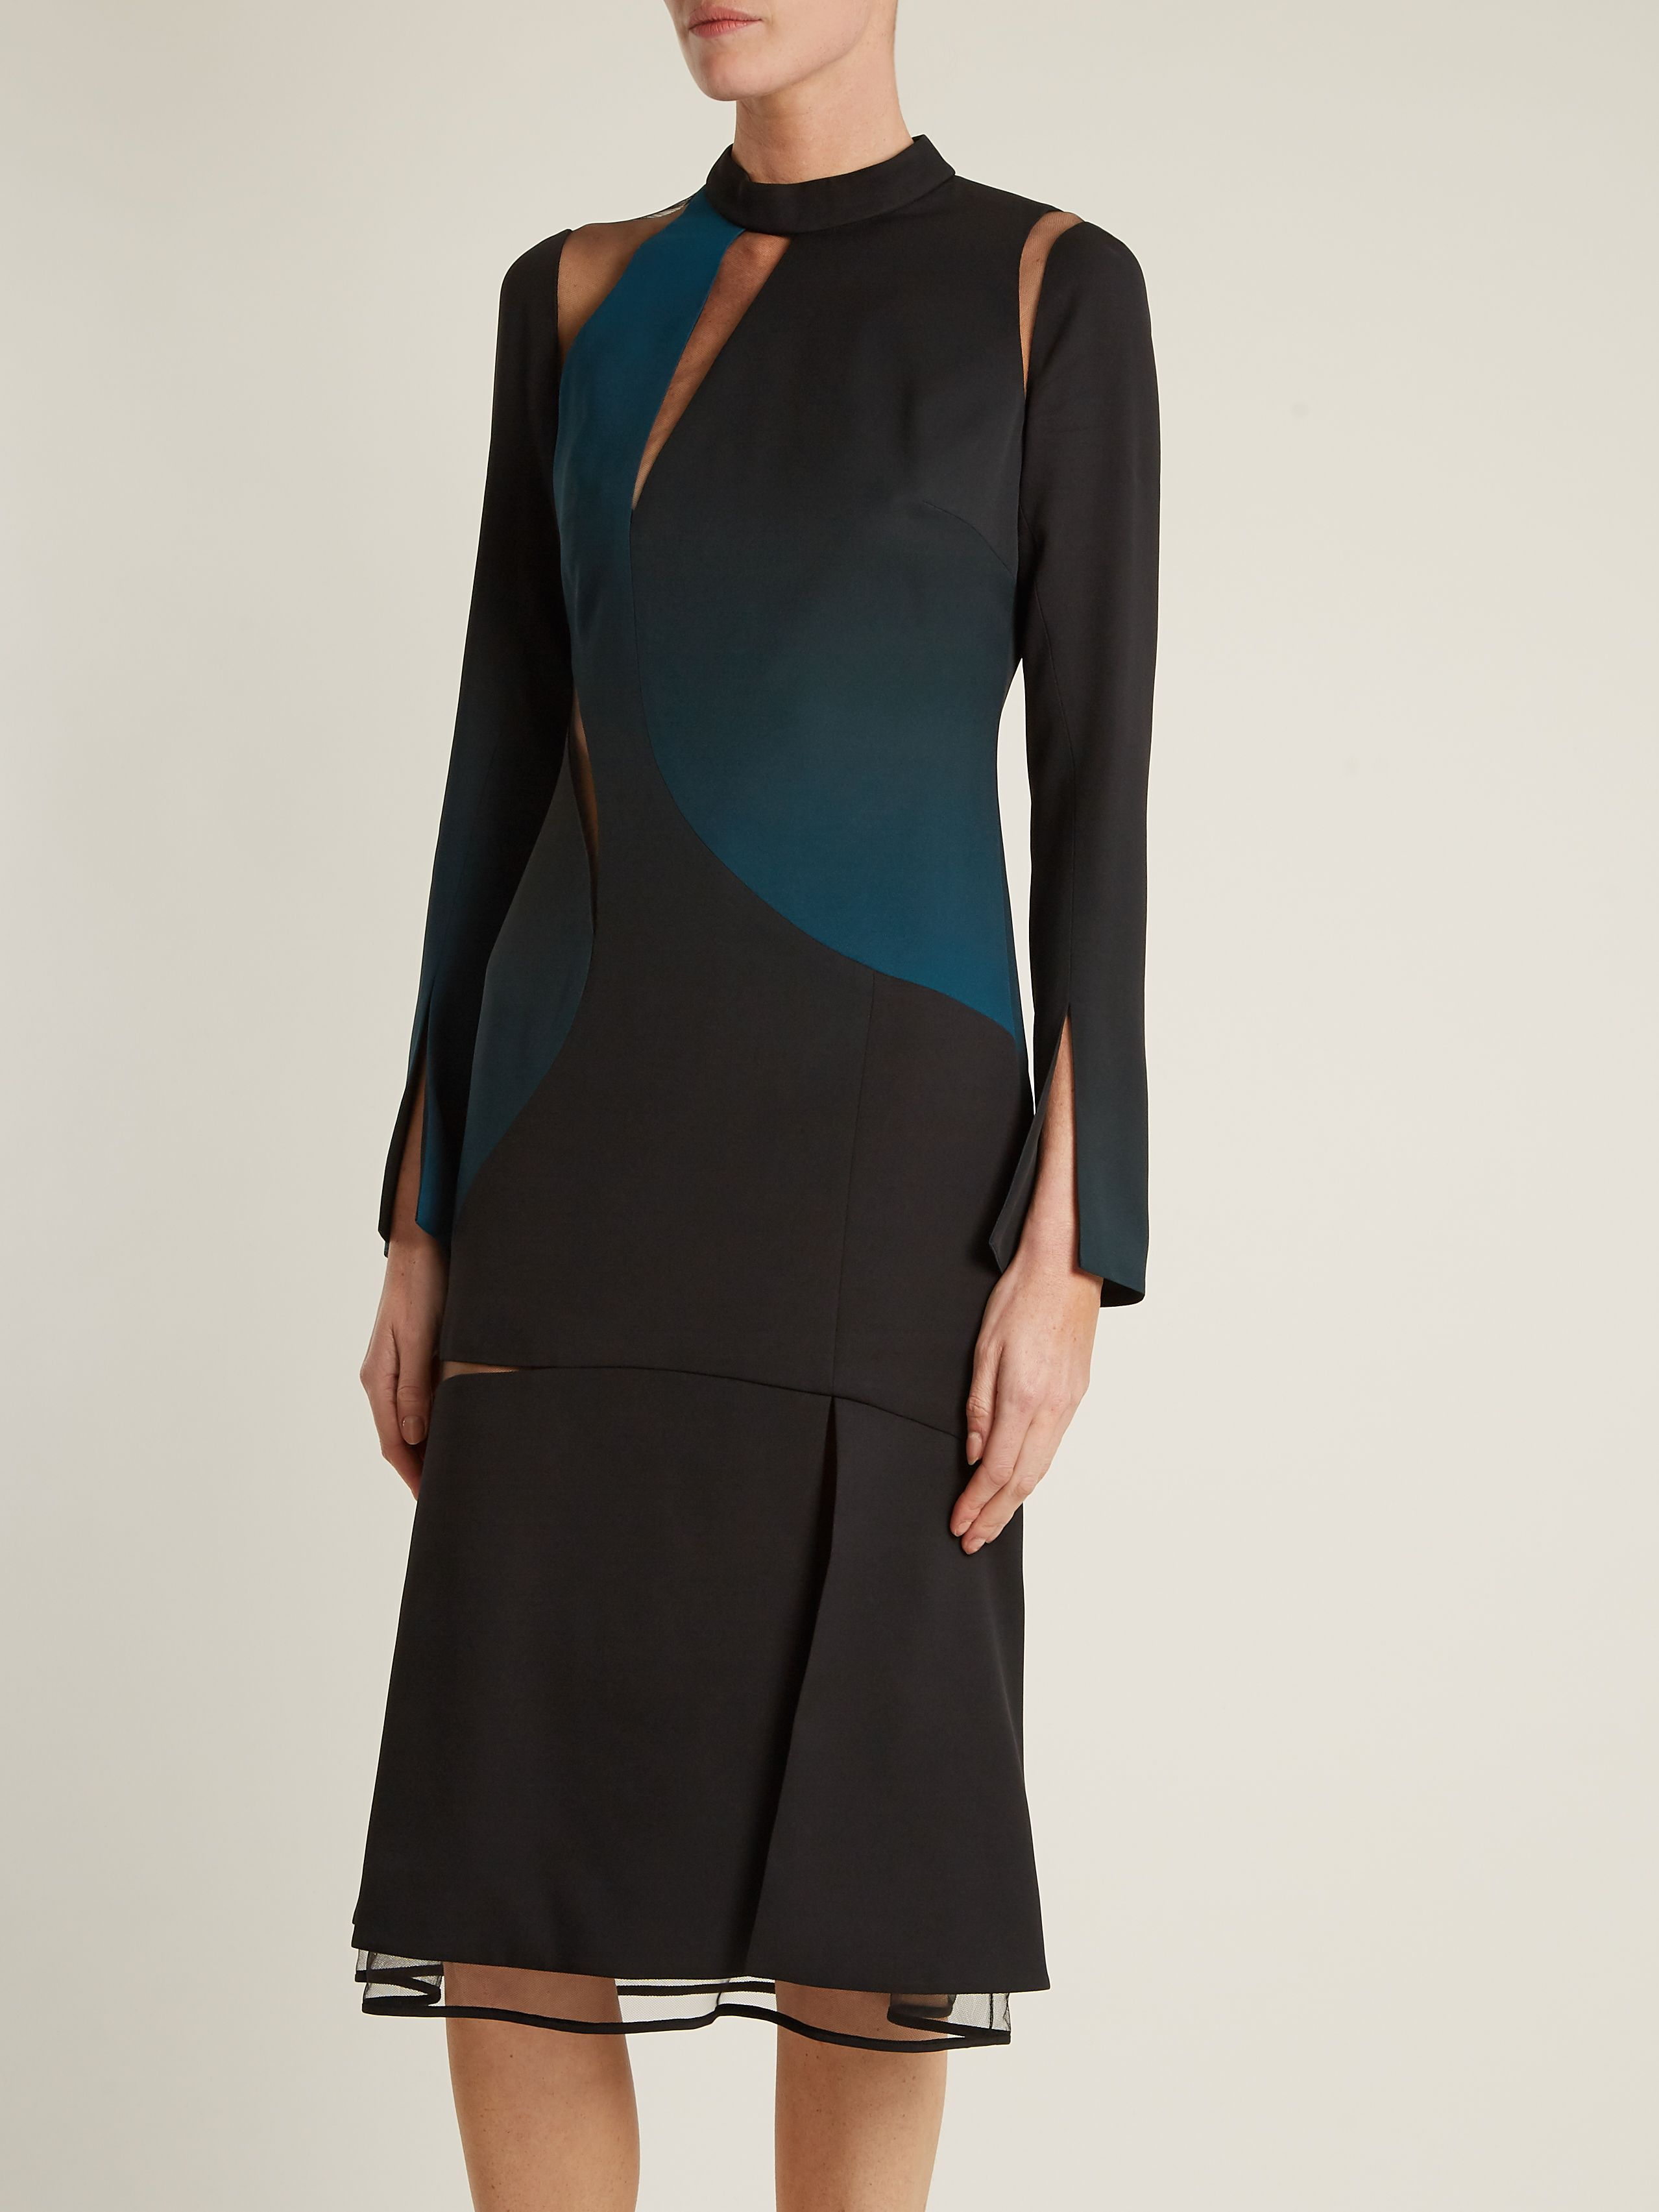 Cut-out high-neck layered dress Versace Free Shipping Recommend M3wTQDZXyr